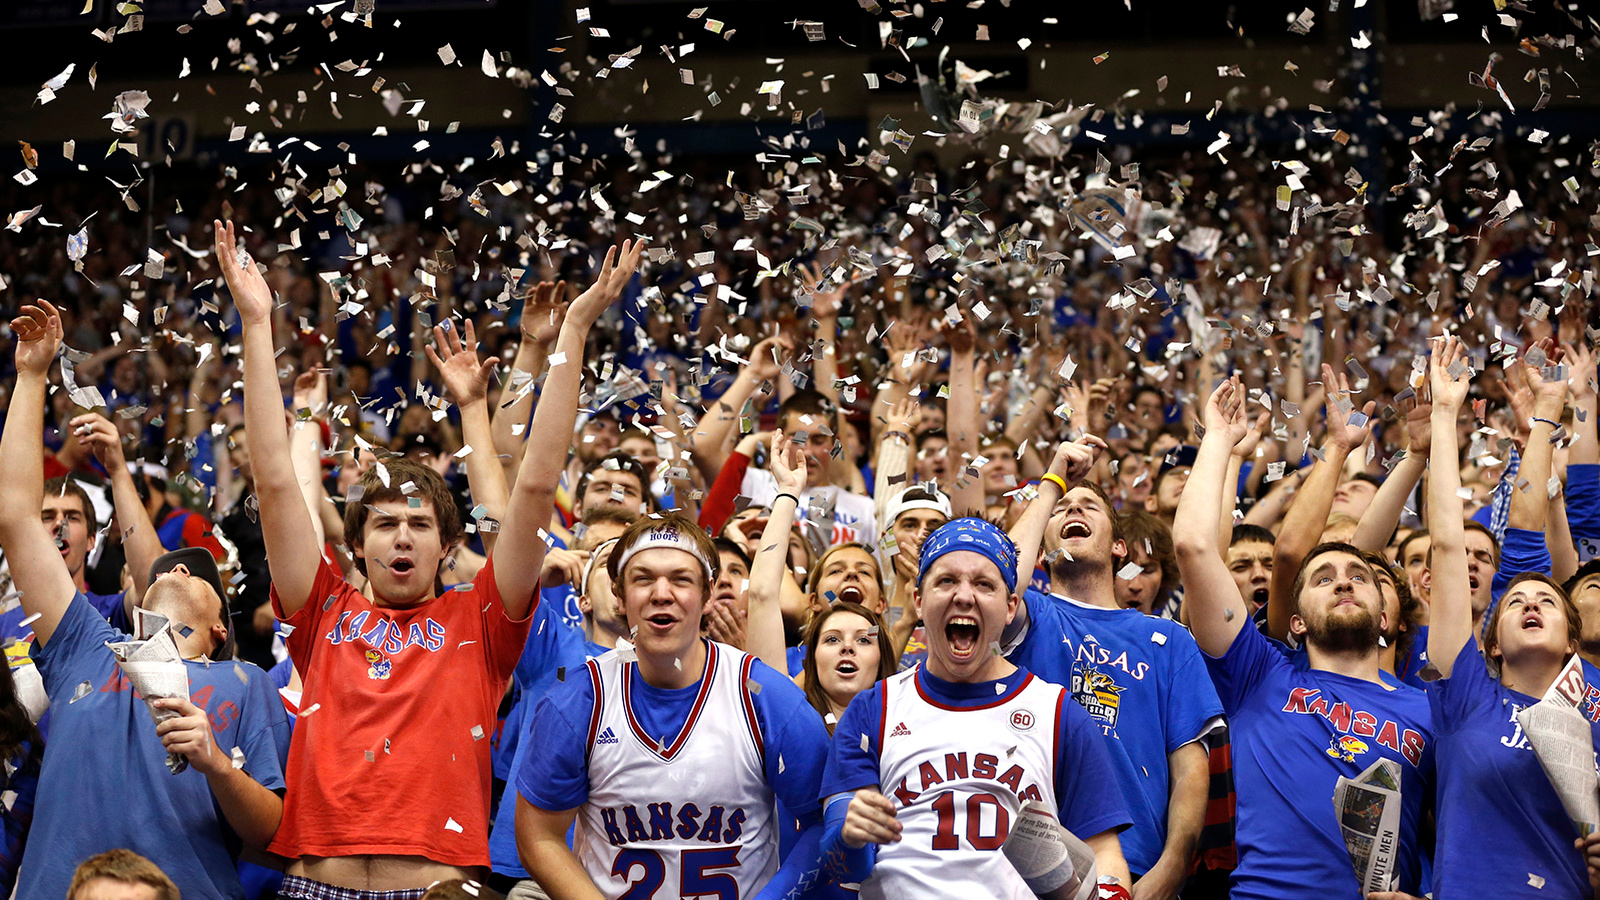 Rivertown Subaru The 5 Most Unique College Basketball Fan Bases In